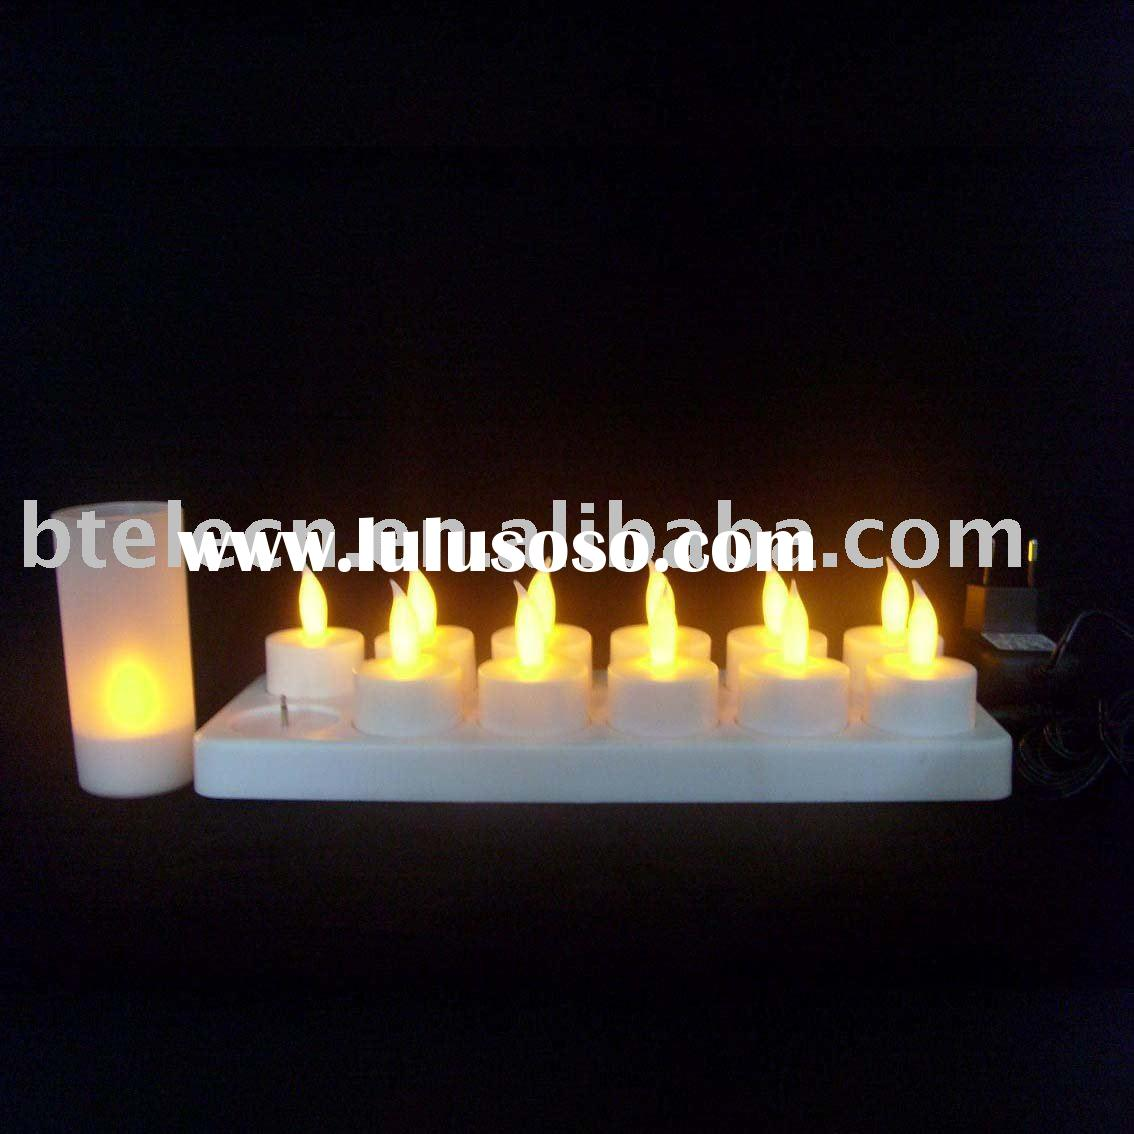 12 pcs Recharge LED candle with frosted holder